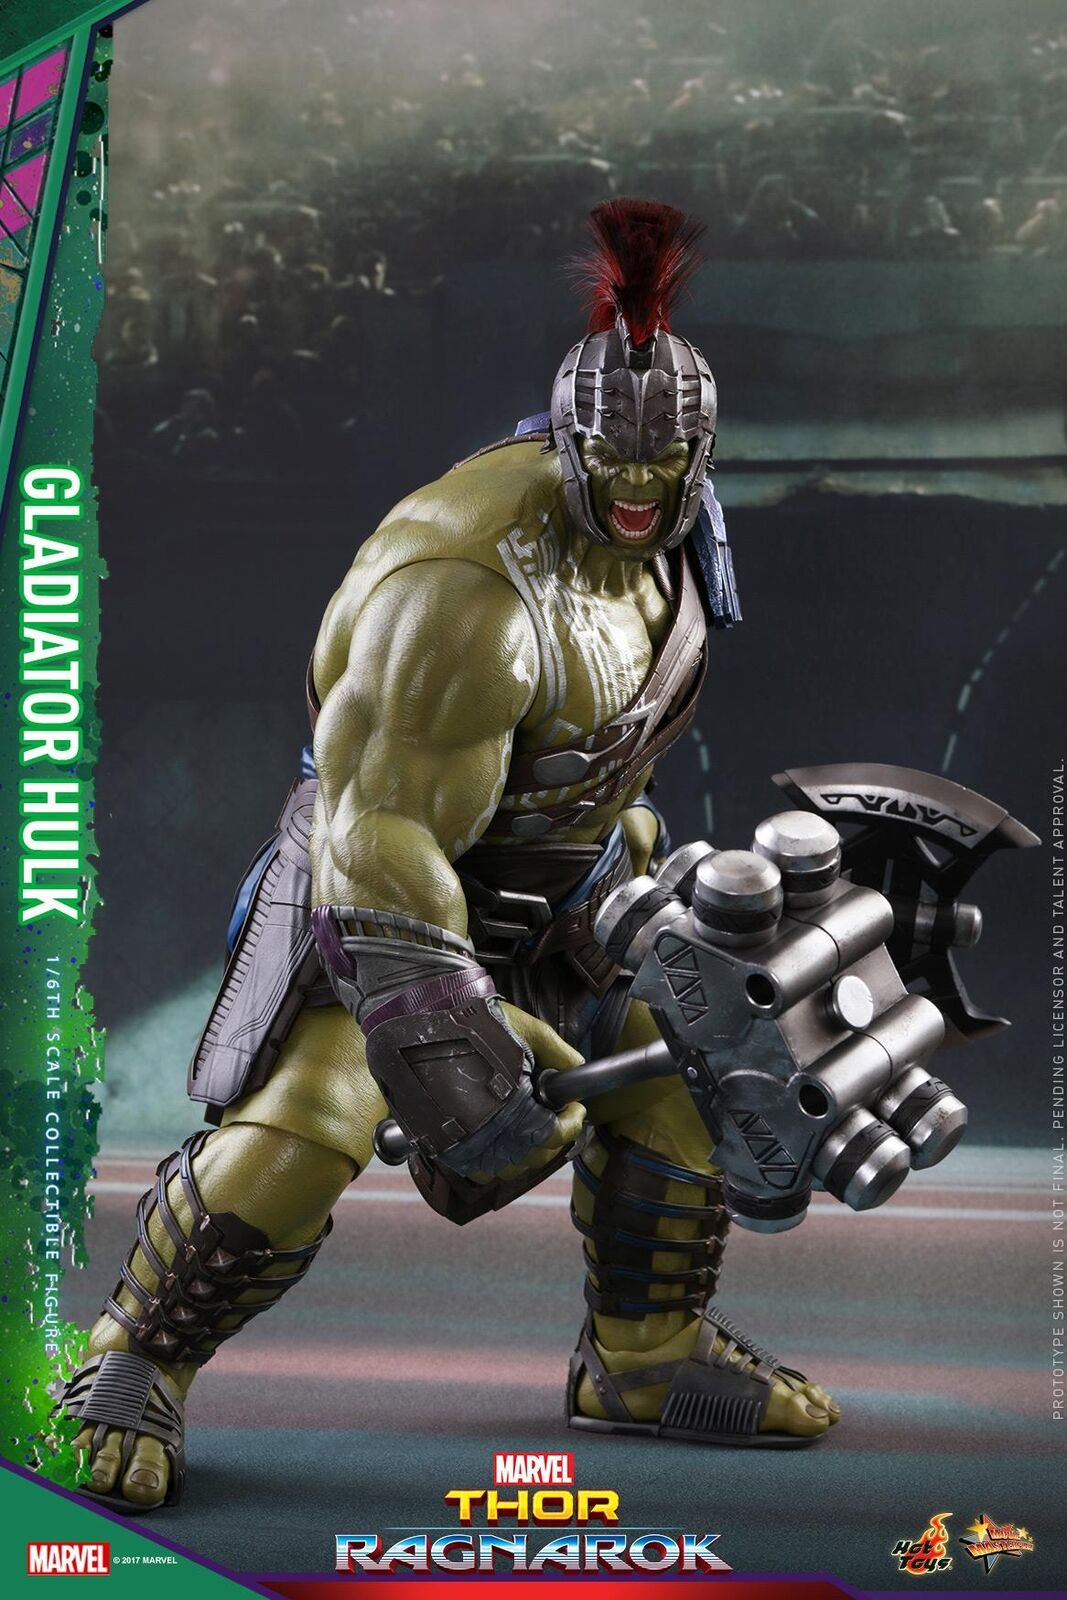 Hot Toys 1 6 Marvel Thor Ragnarok Mms430 Gladiator Hulk Action Figure 45cm Zoltar